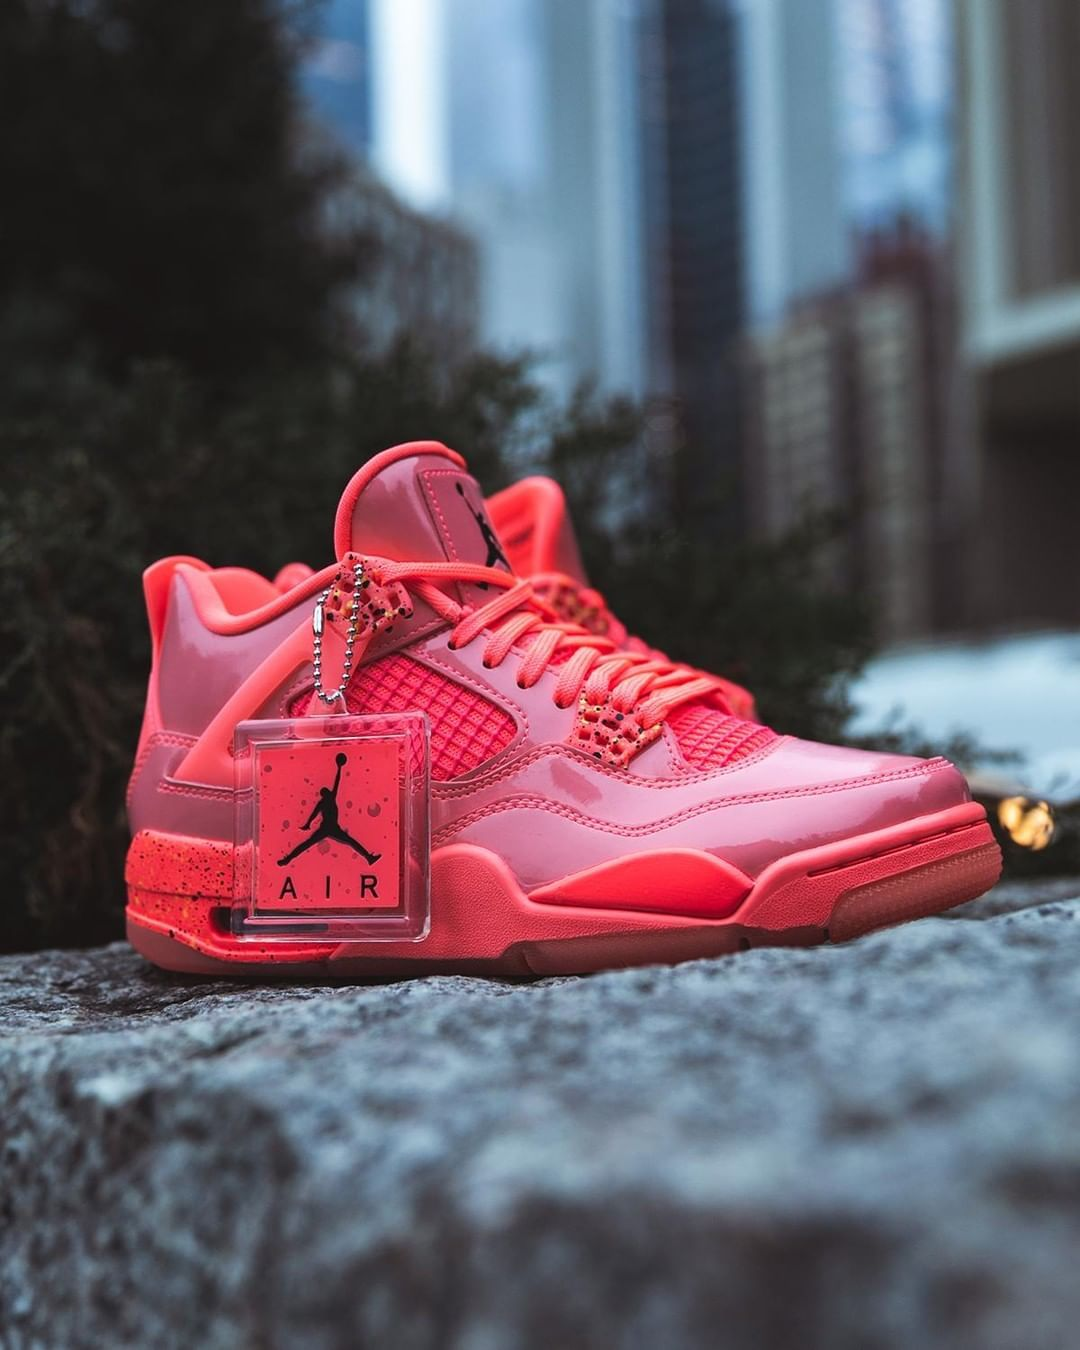 "9f0a61f8f1c1 Foot Locker on Instagram  ""Pack a punch. WMNS  Jordan Retro 4  Hot Punch   Launching 1 12"